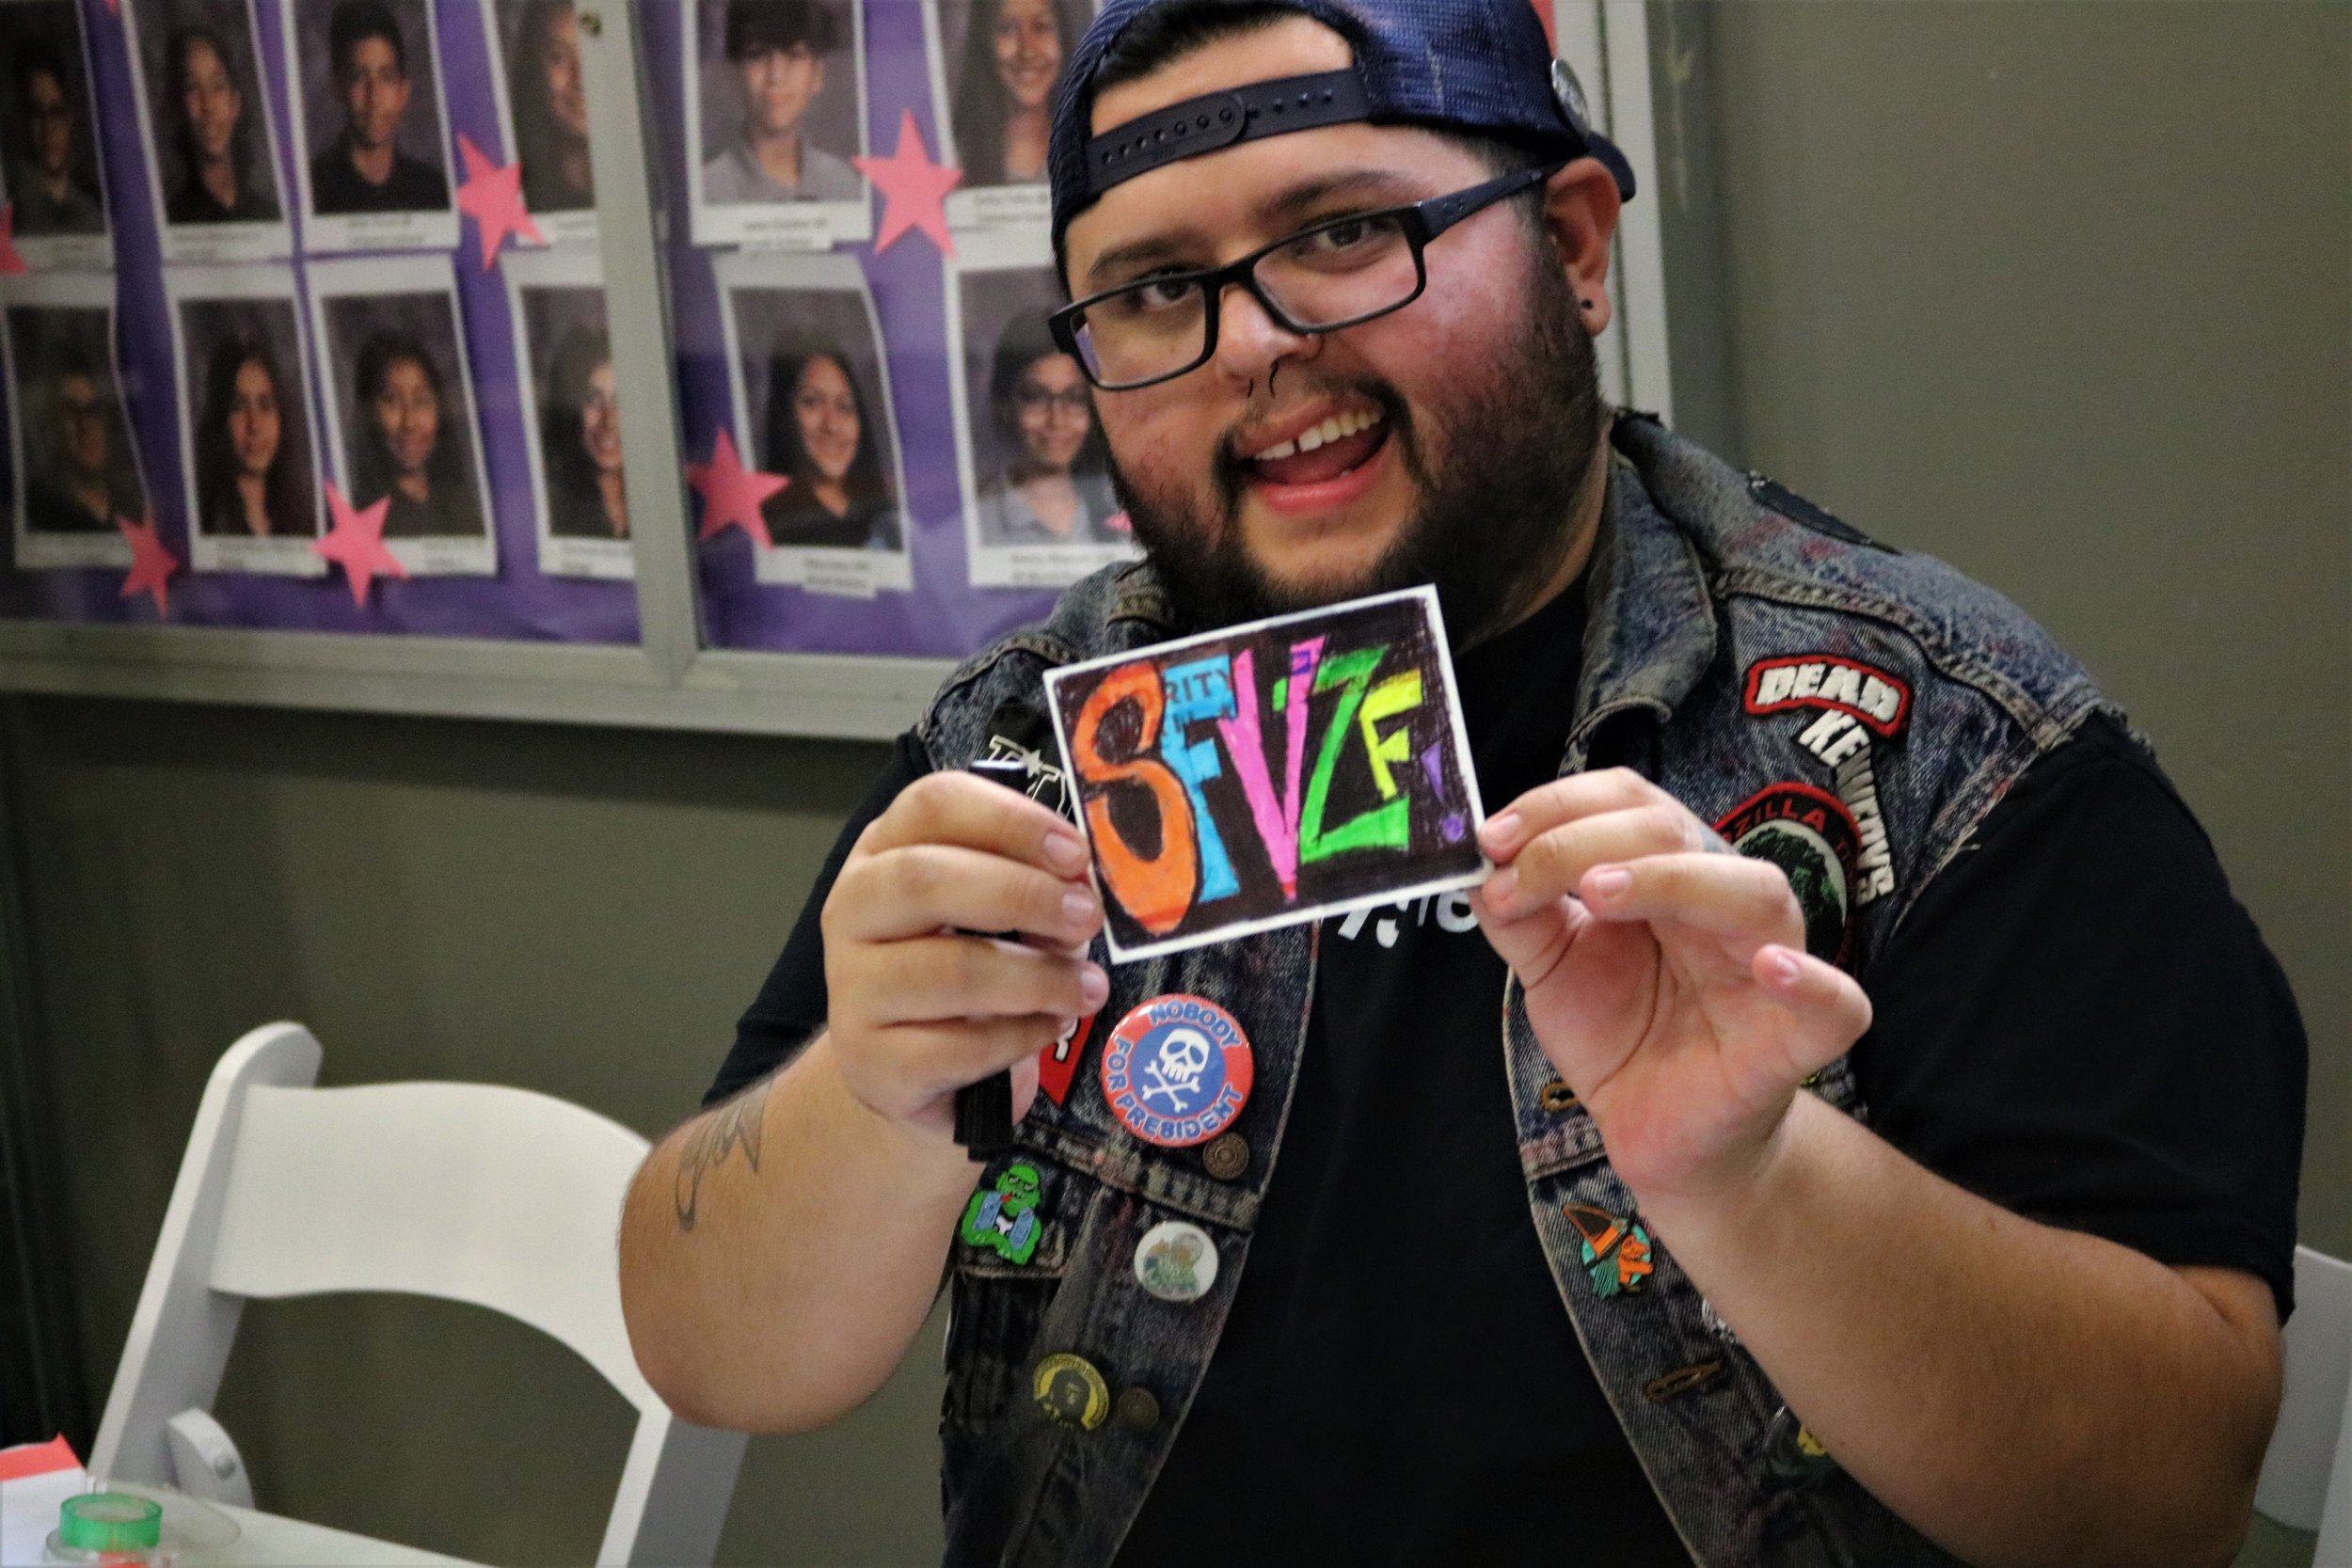 NELA zinester Daniel Durazo volunteers in the zinemaking area at SFVZF 2018.